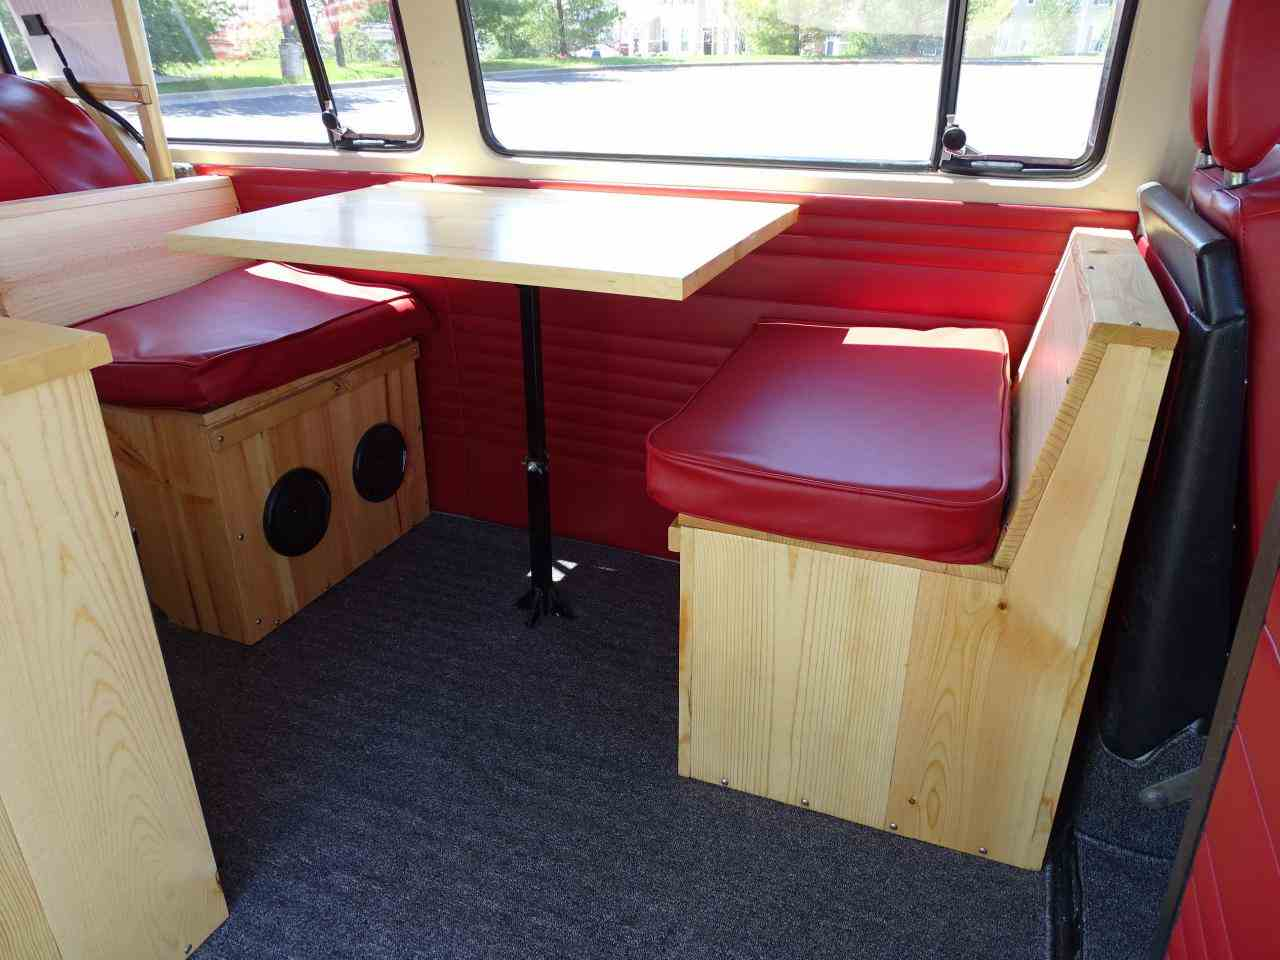 Large Picture of 1974 Westfalia Camper located in O'Fallon Illinois - $34,995.00 Offered by Gateway Classic Cars - St. Louis - NEEL